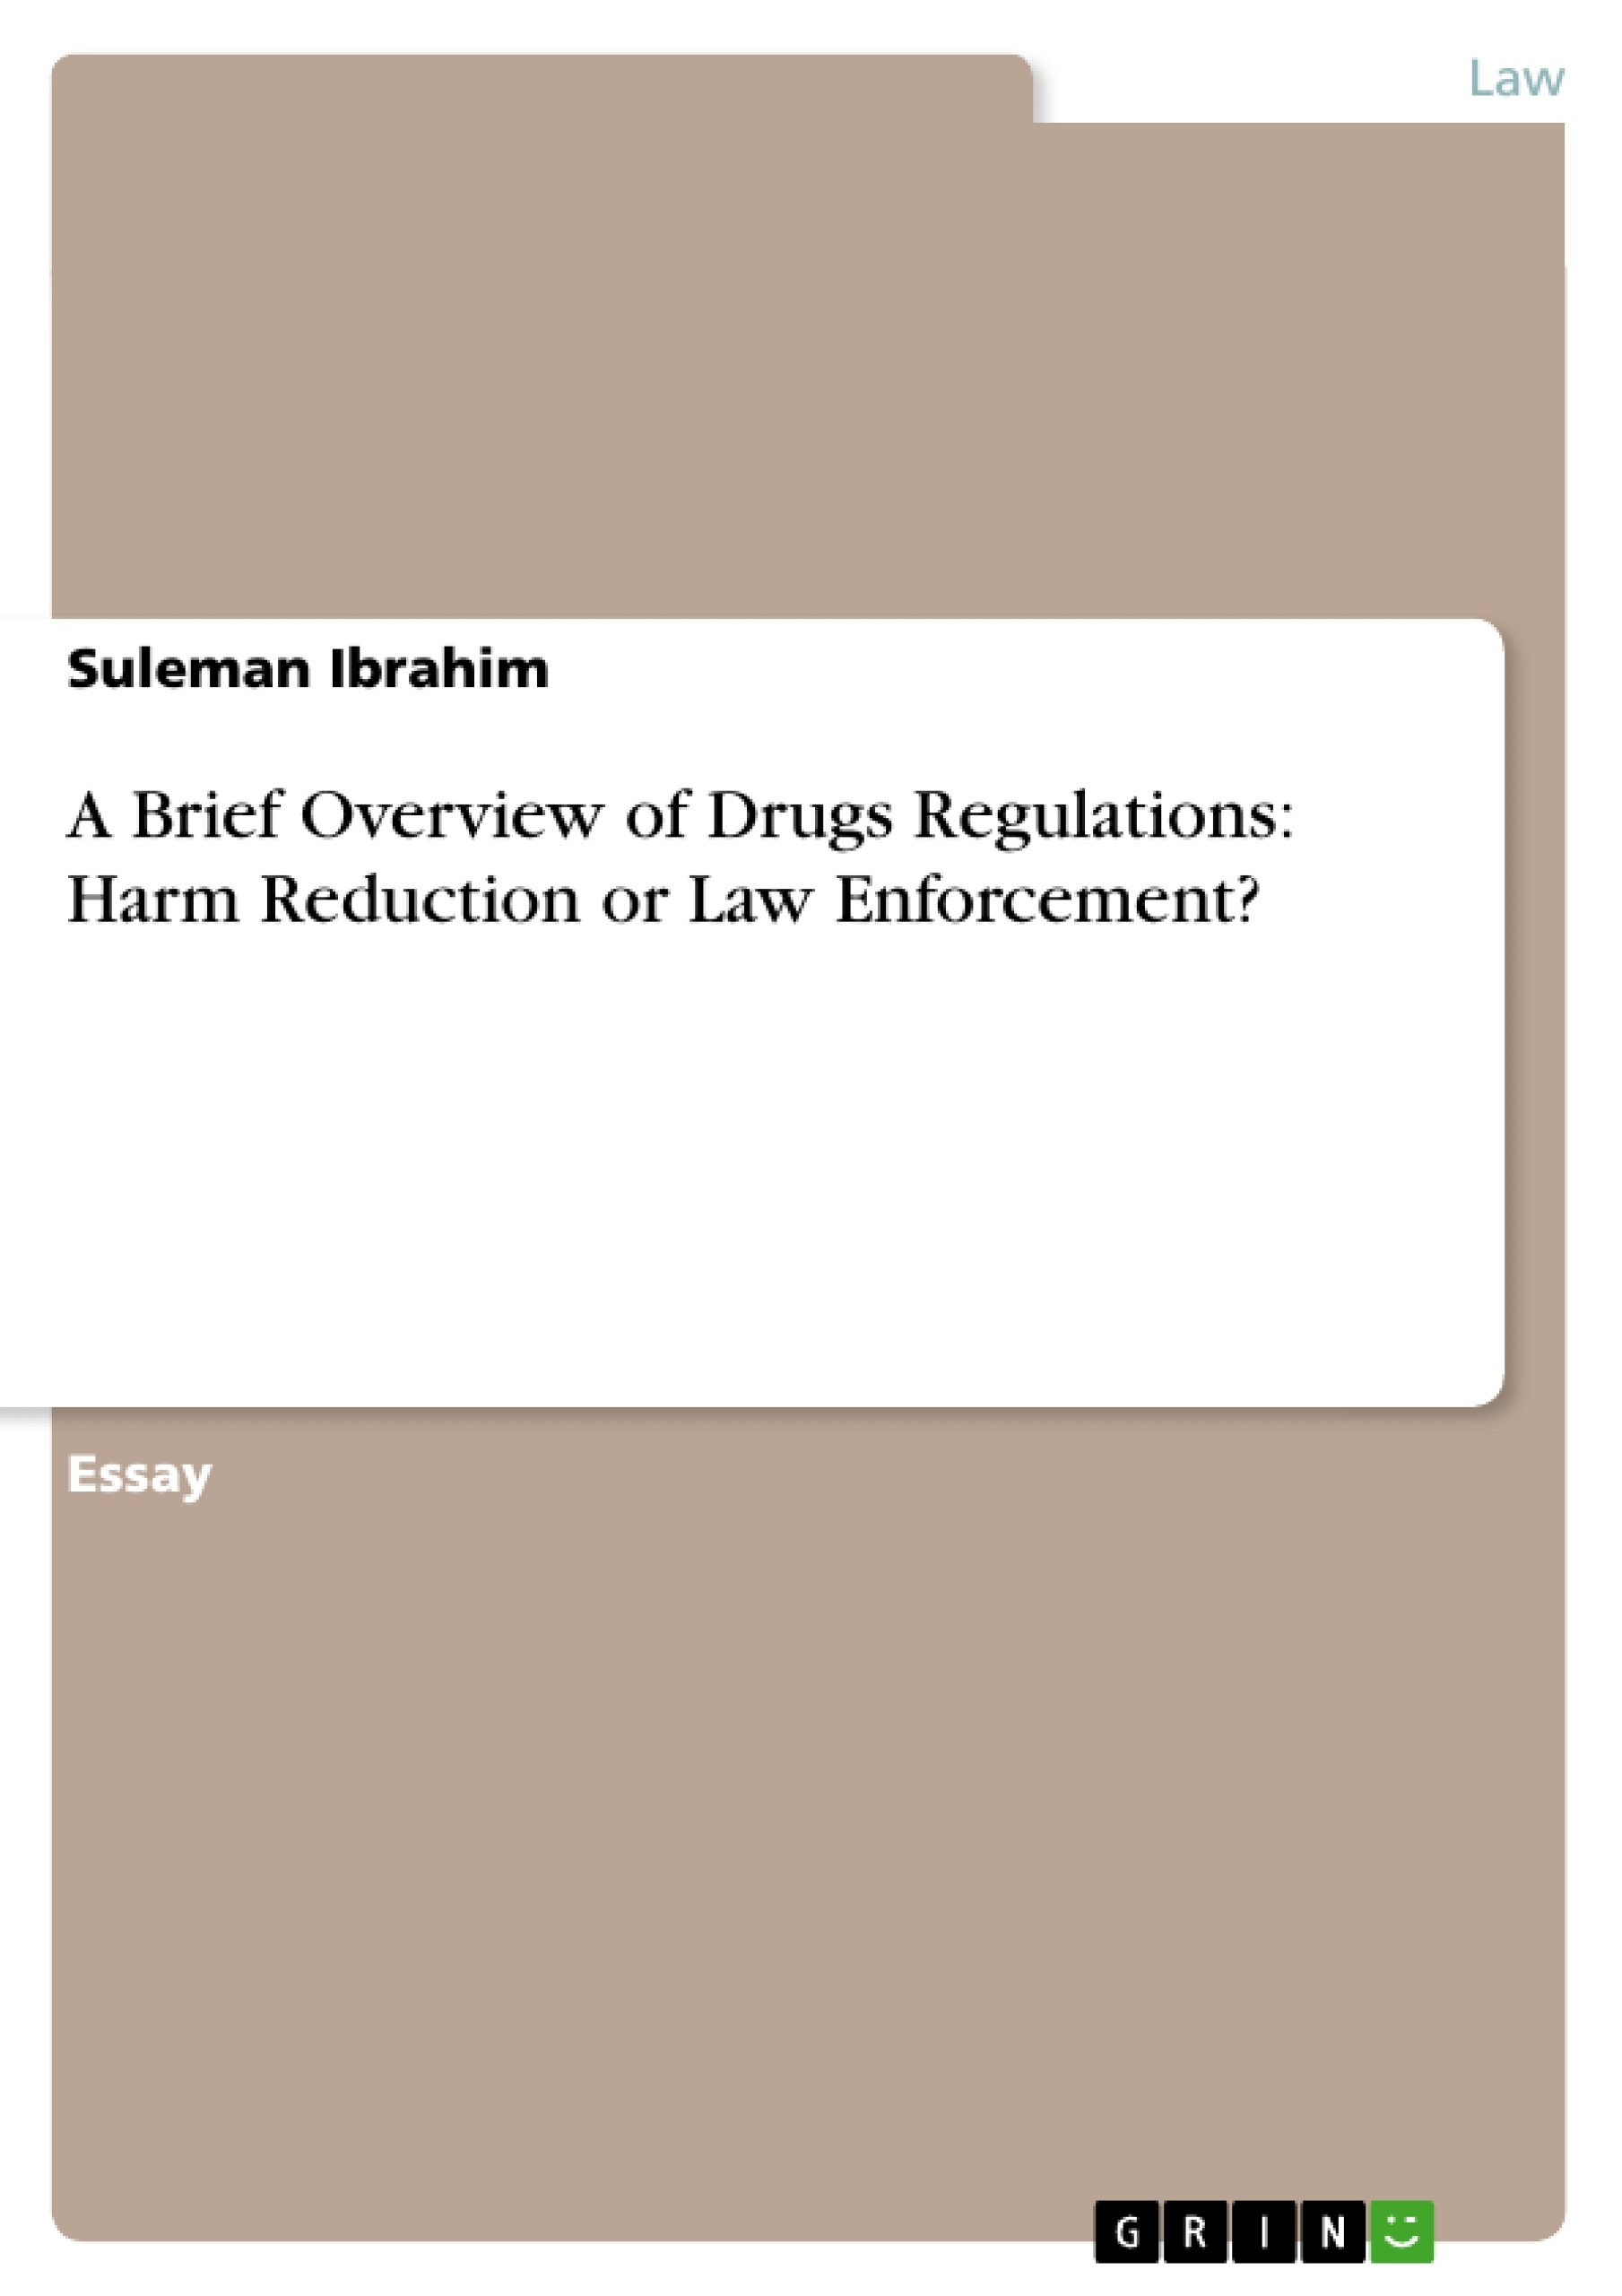 Title: A Brief Overview of Drugs Regulations: Harm Reduction or Law Enforcement?